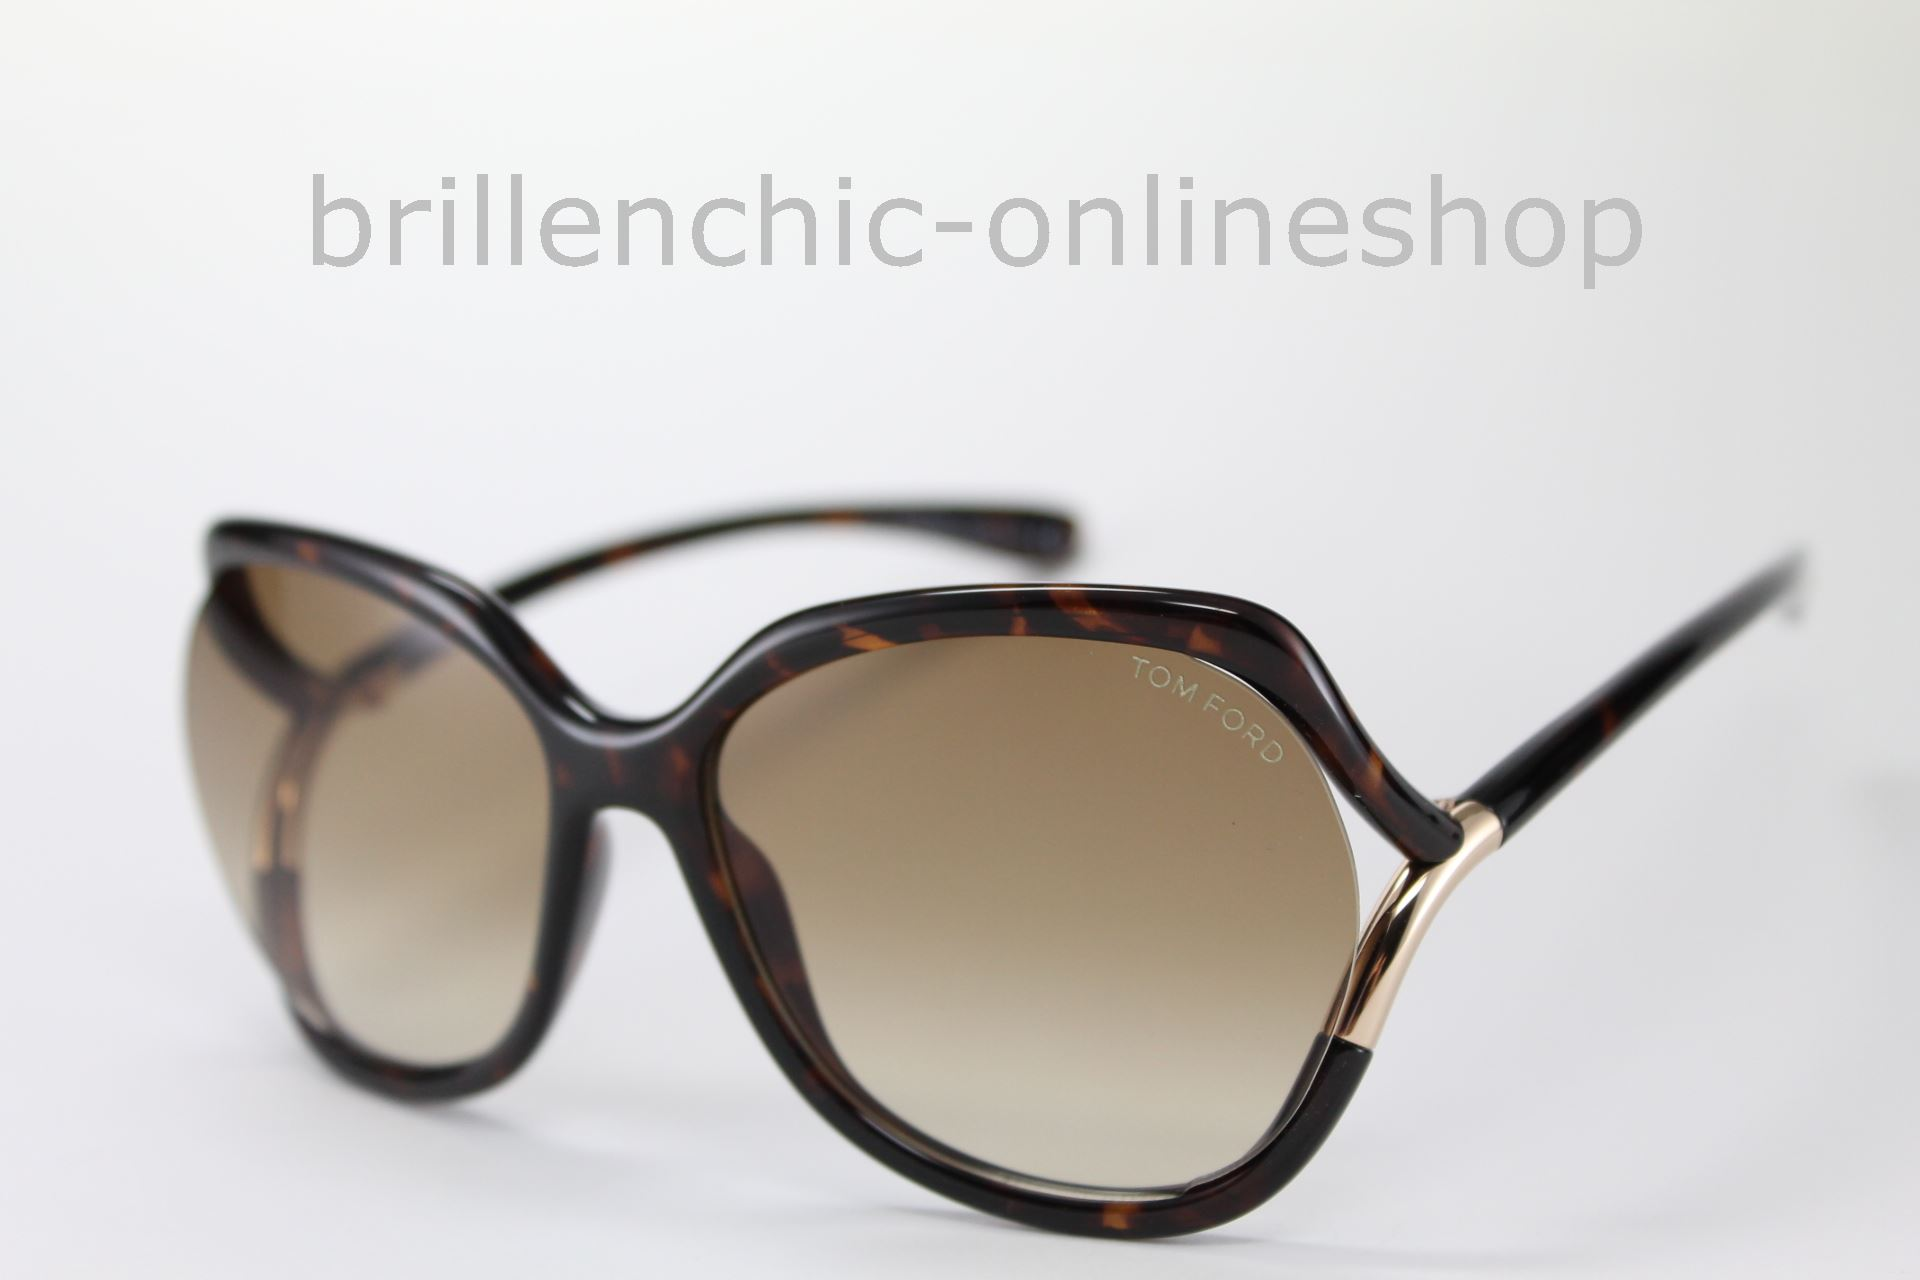 cc7378f28a40d Brillenchic-onlineshop in Berlin - TOM FORD TF 578 52F ANOUK 02